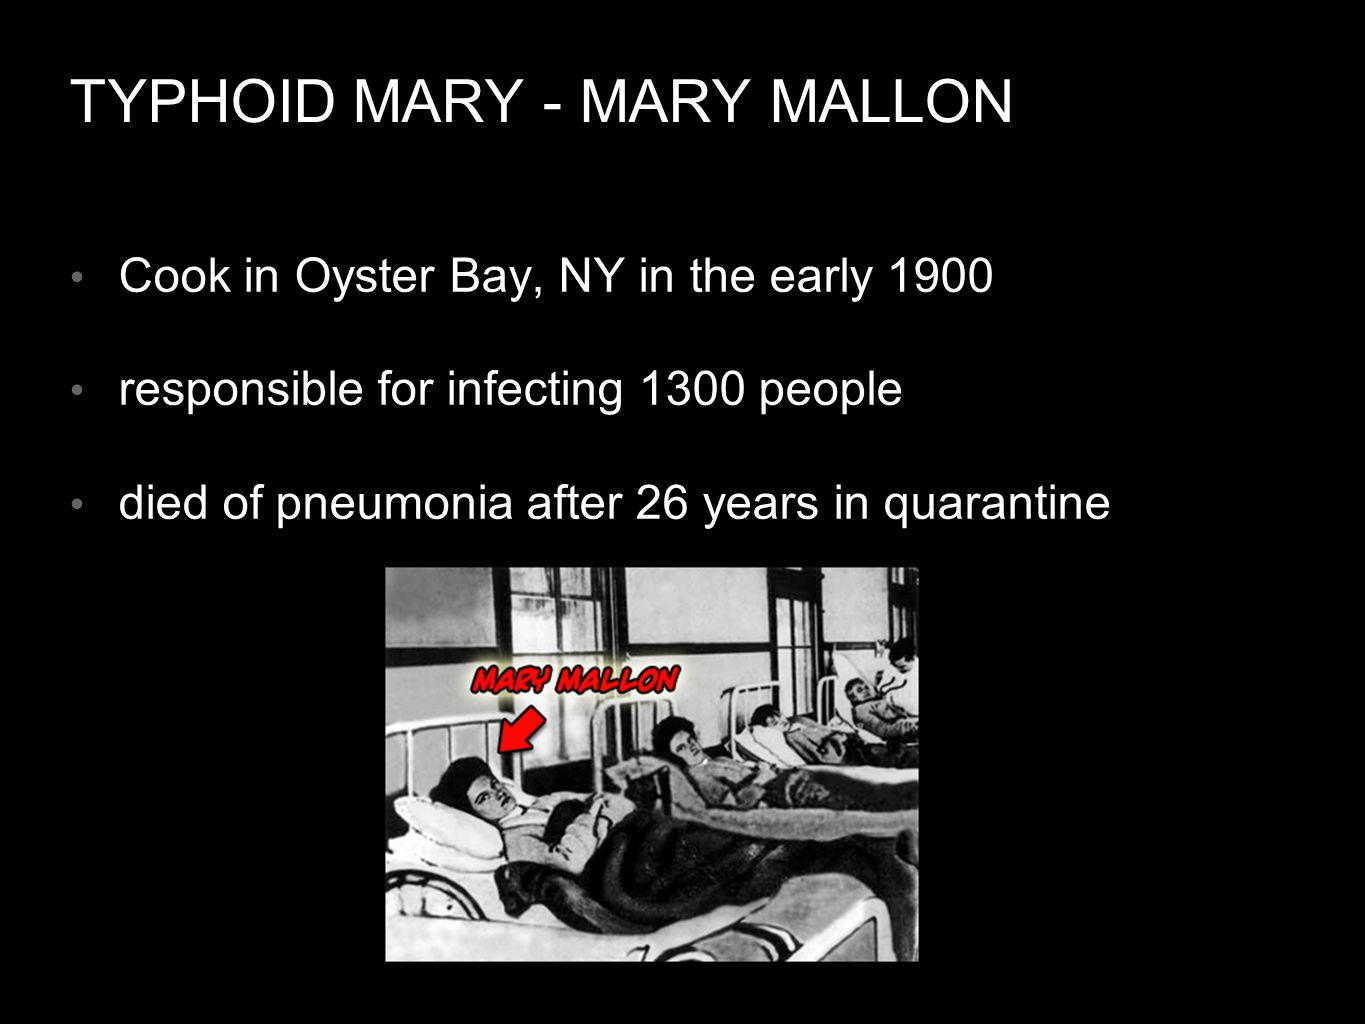 TYPHOID MARY - MARY MALLON Cook in Oyster Bay, NY in the early 1900 responsible for infecting 1300 people died of pneumonia after 26 years in quarantine